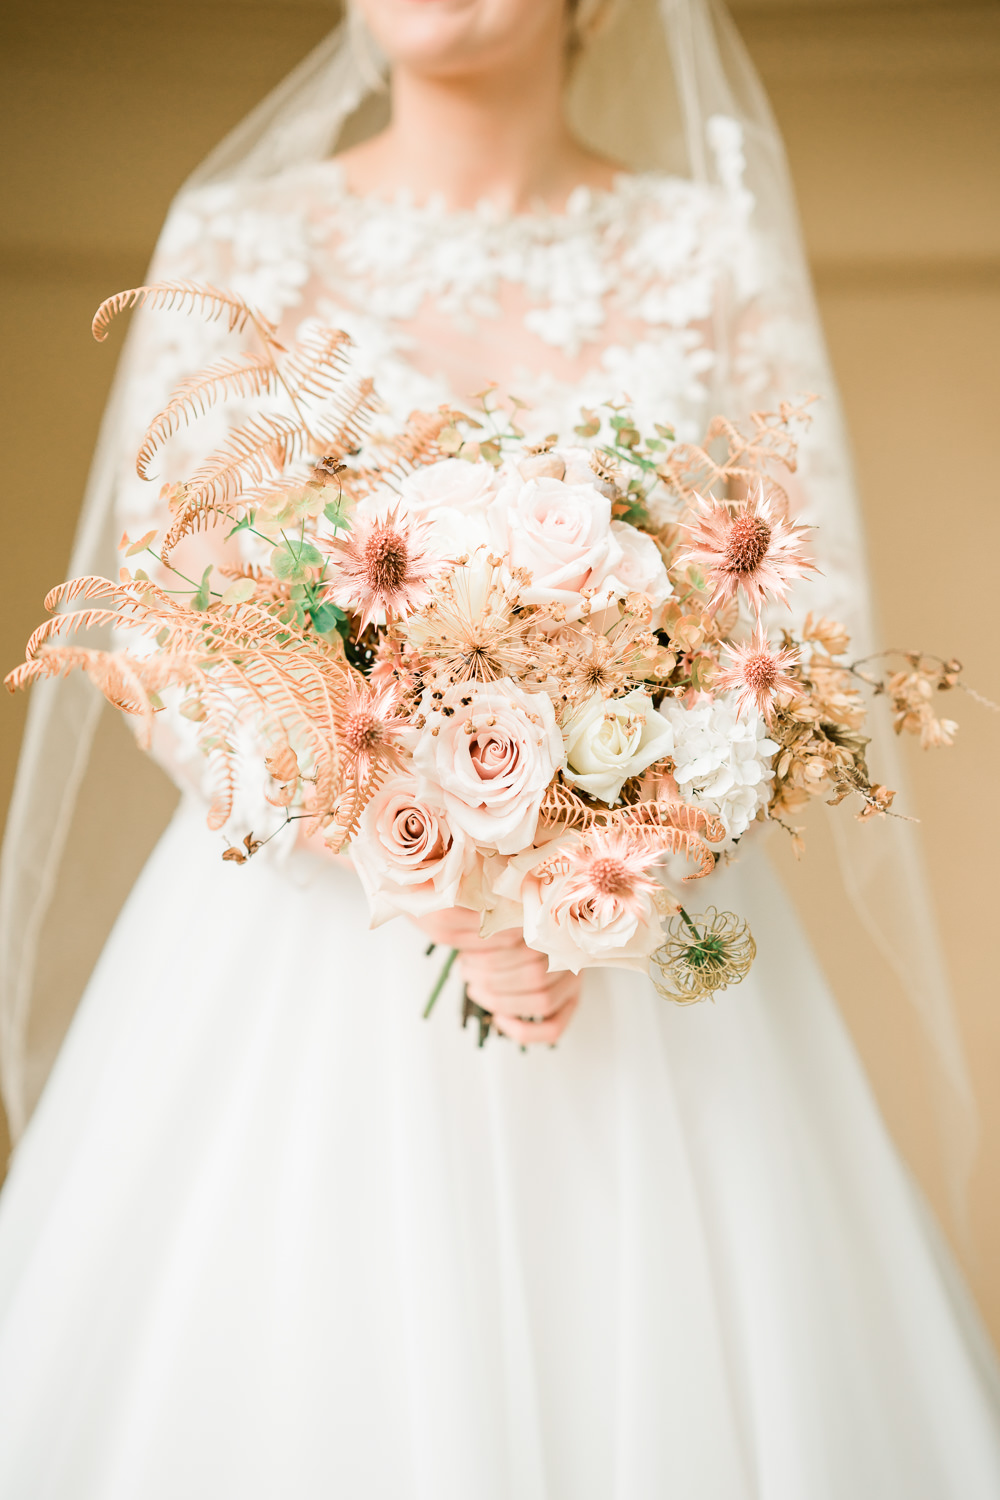 Bouquet Flowers Bride Bridal Blush Roses Dried Hydrangea Poppy Heads Copper Eringium Fern Grasses Seed Golden Autumnal Wedding Ideas Joanna Briggs Photography